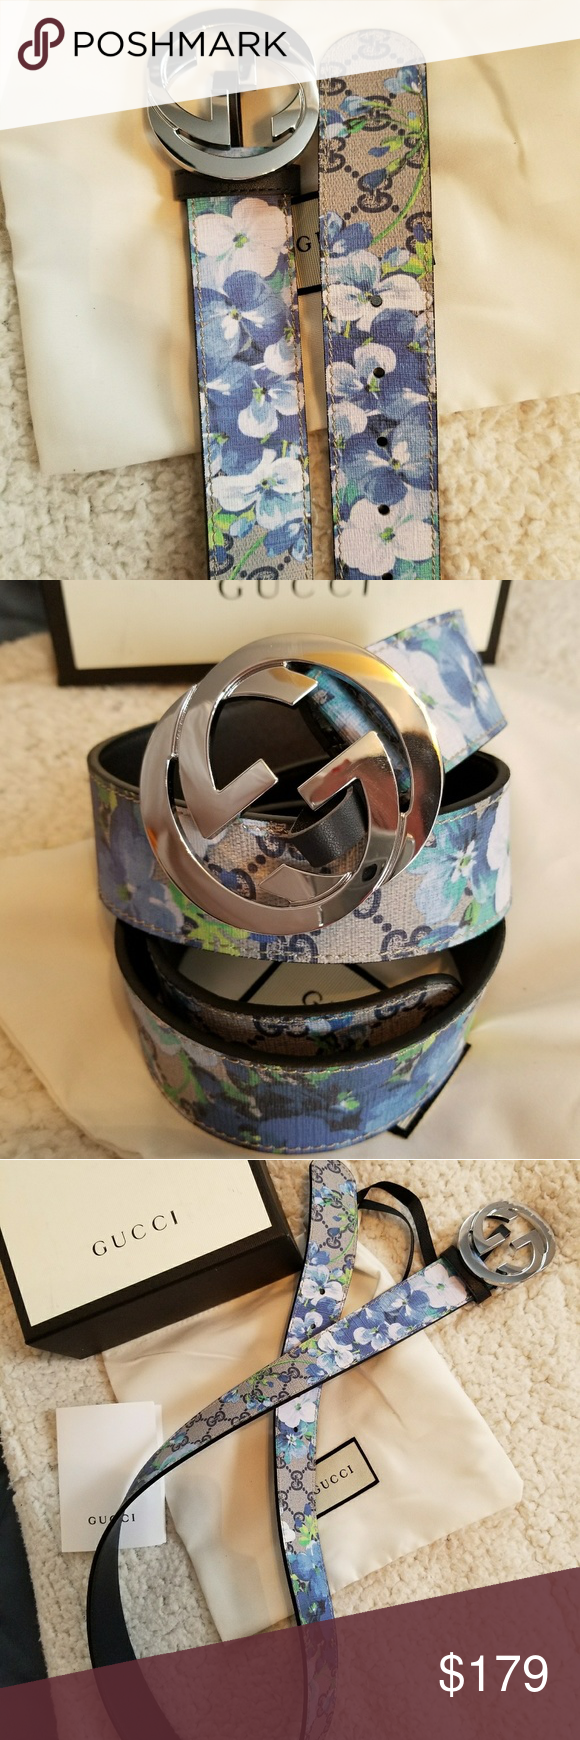 59ba214b07d 😍Authentic Gucci Belt Blue Blooms Monogram Print 😍Authentic Gucci Belt  Blue Flower Blooms Monogram Print with Silver GG Buckle. Nice!